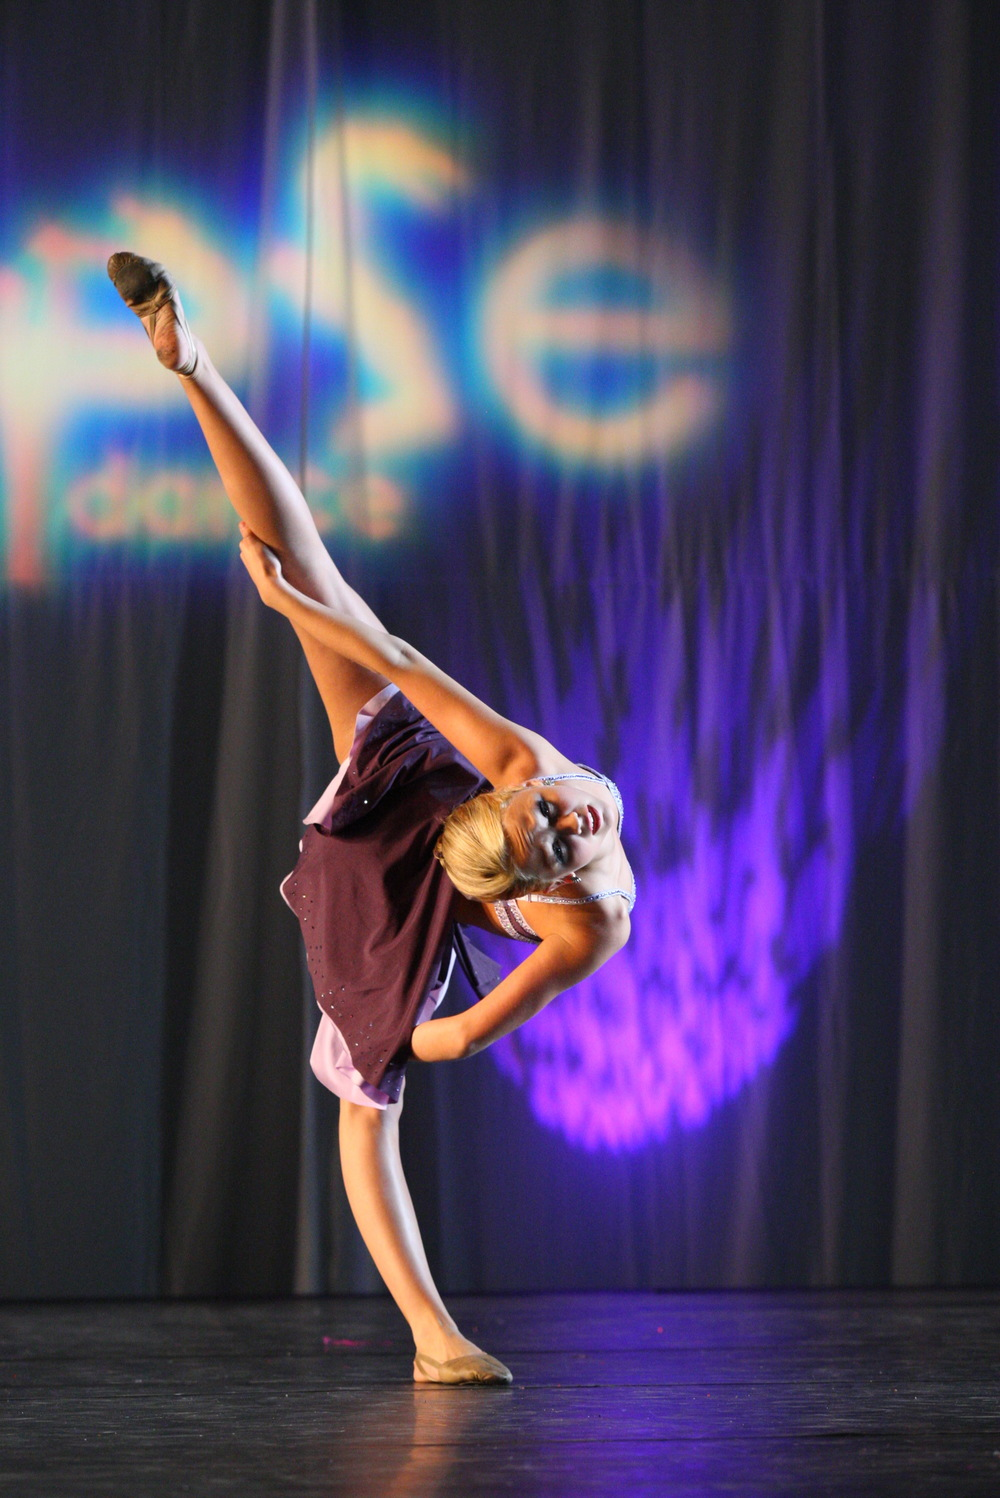 2013 - Alyssa Jacobs from Larkin Dance Studio